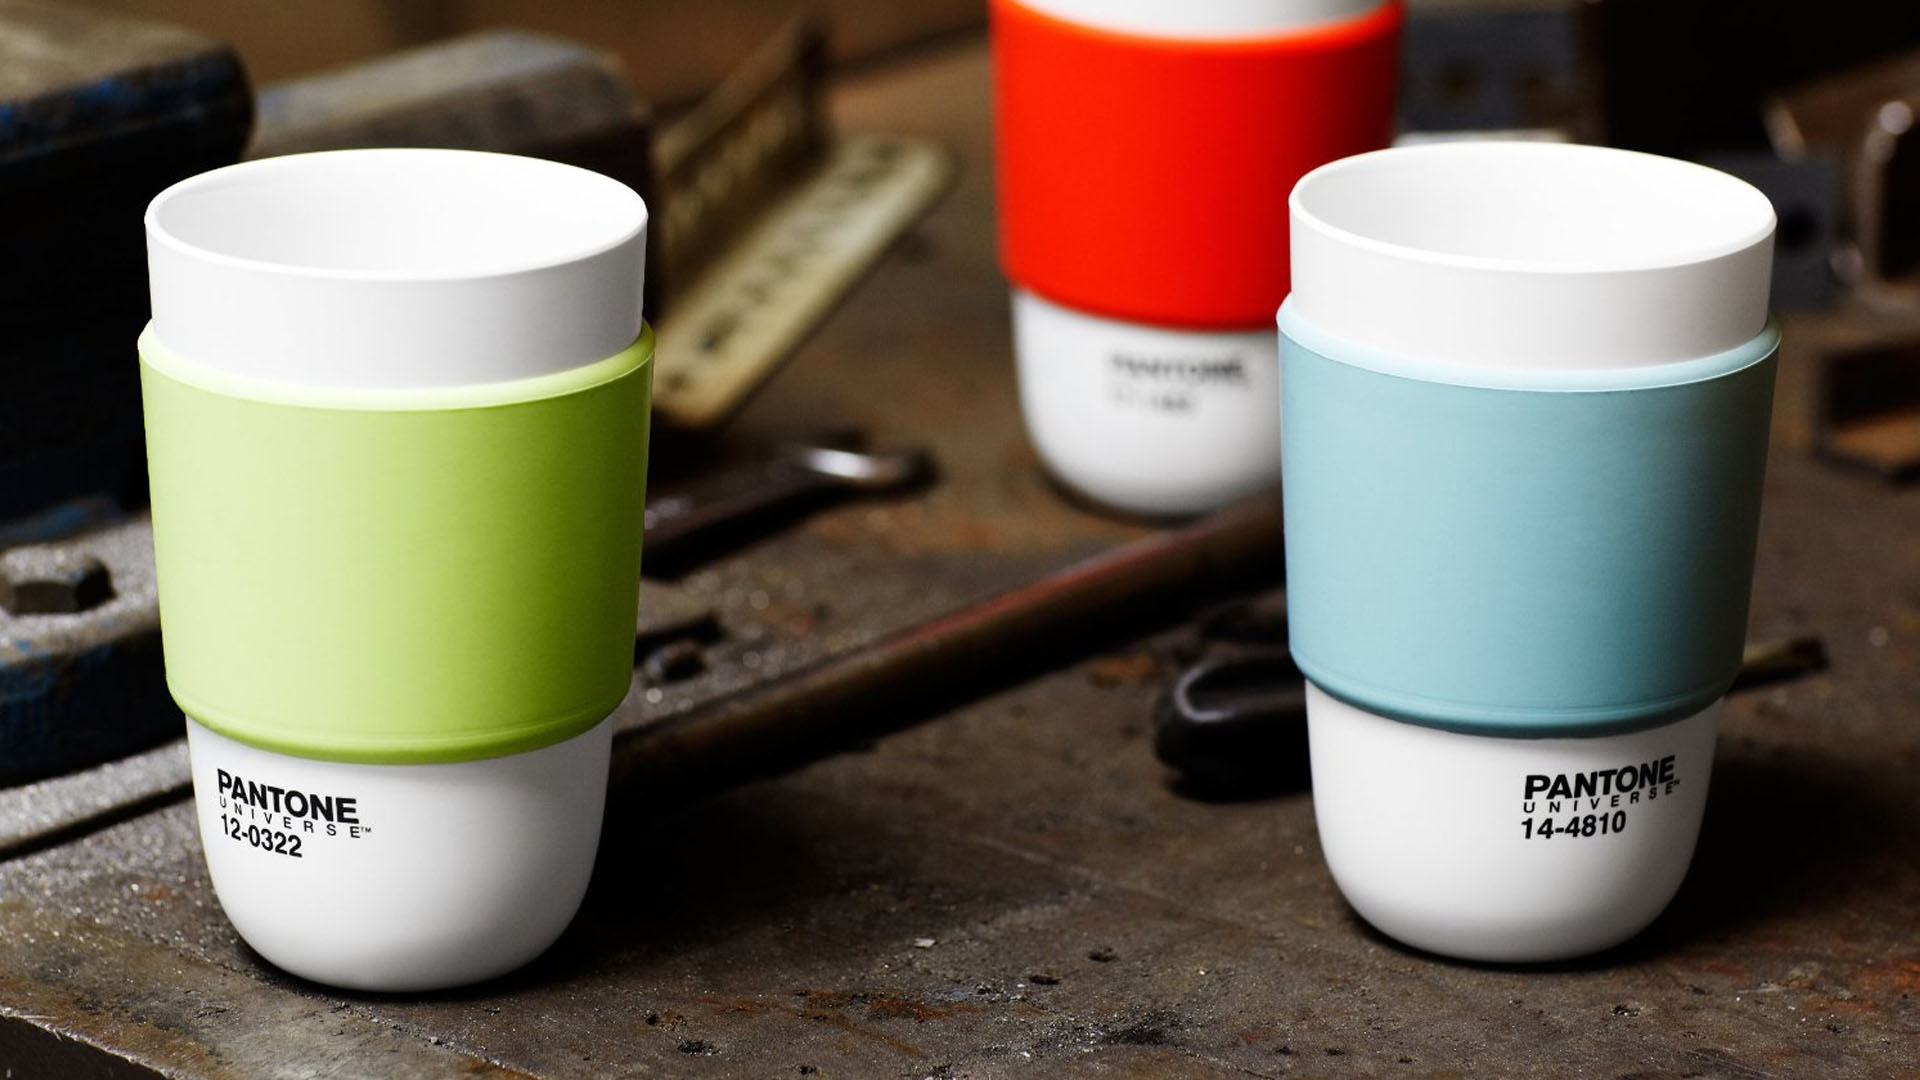 Pantone Universe Cup With Silicone Band